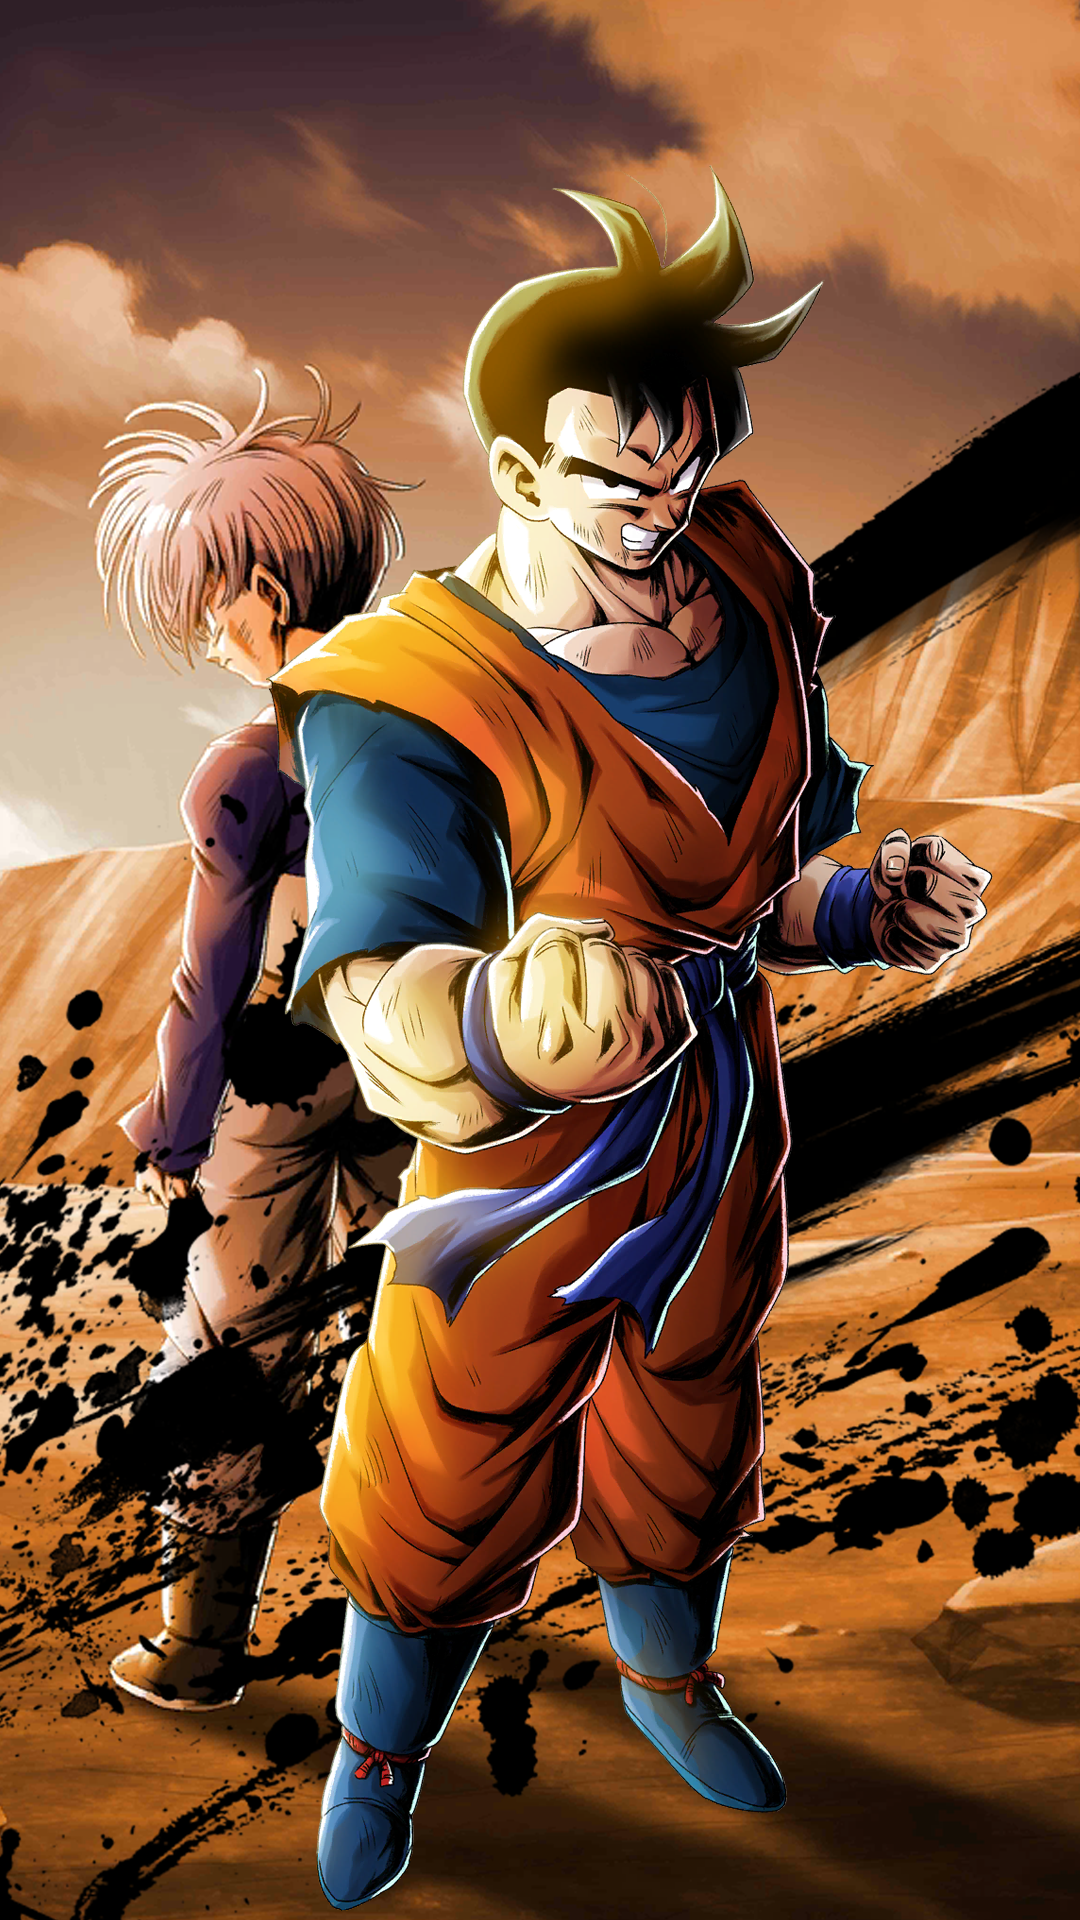 Ex Future Gohan Hd Wallpaper Dragonballlegends 1080x1920 Download Hd Wallpaper Wallpapertip